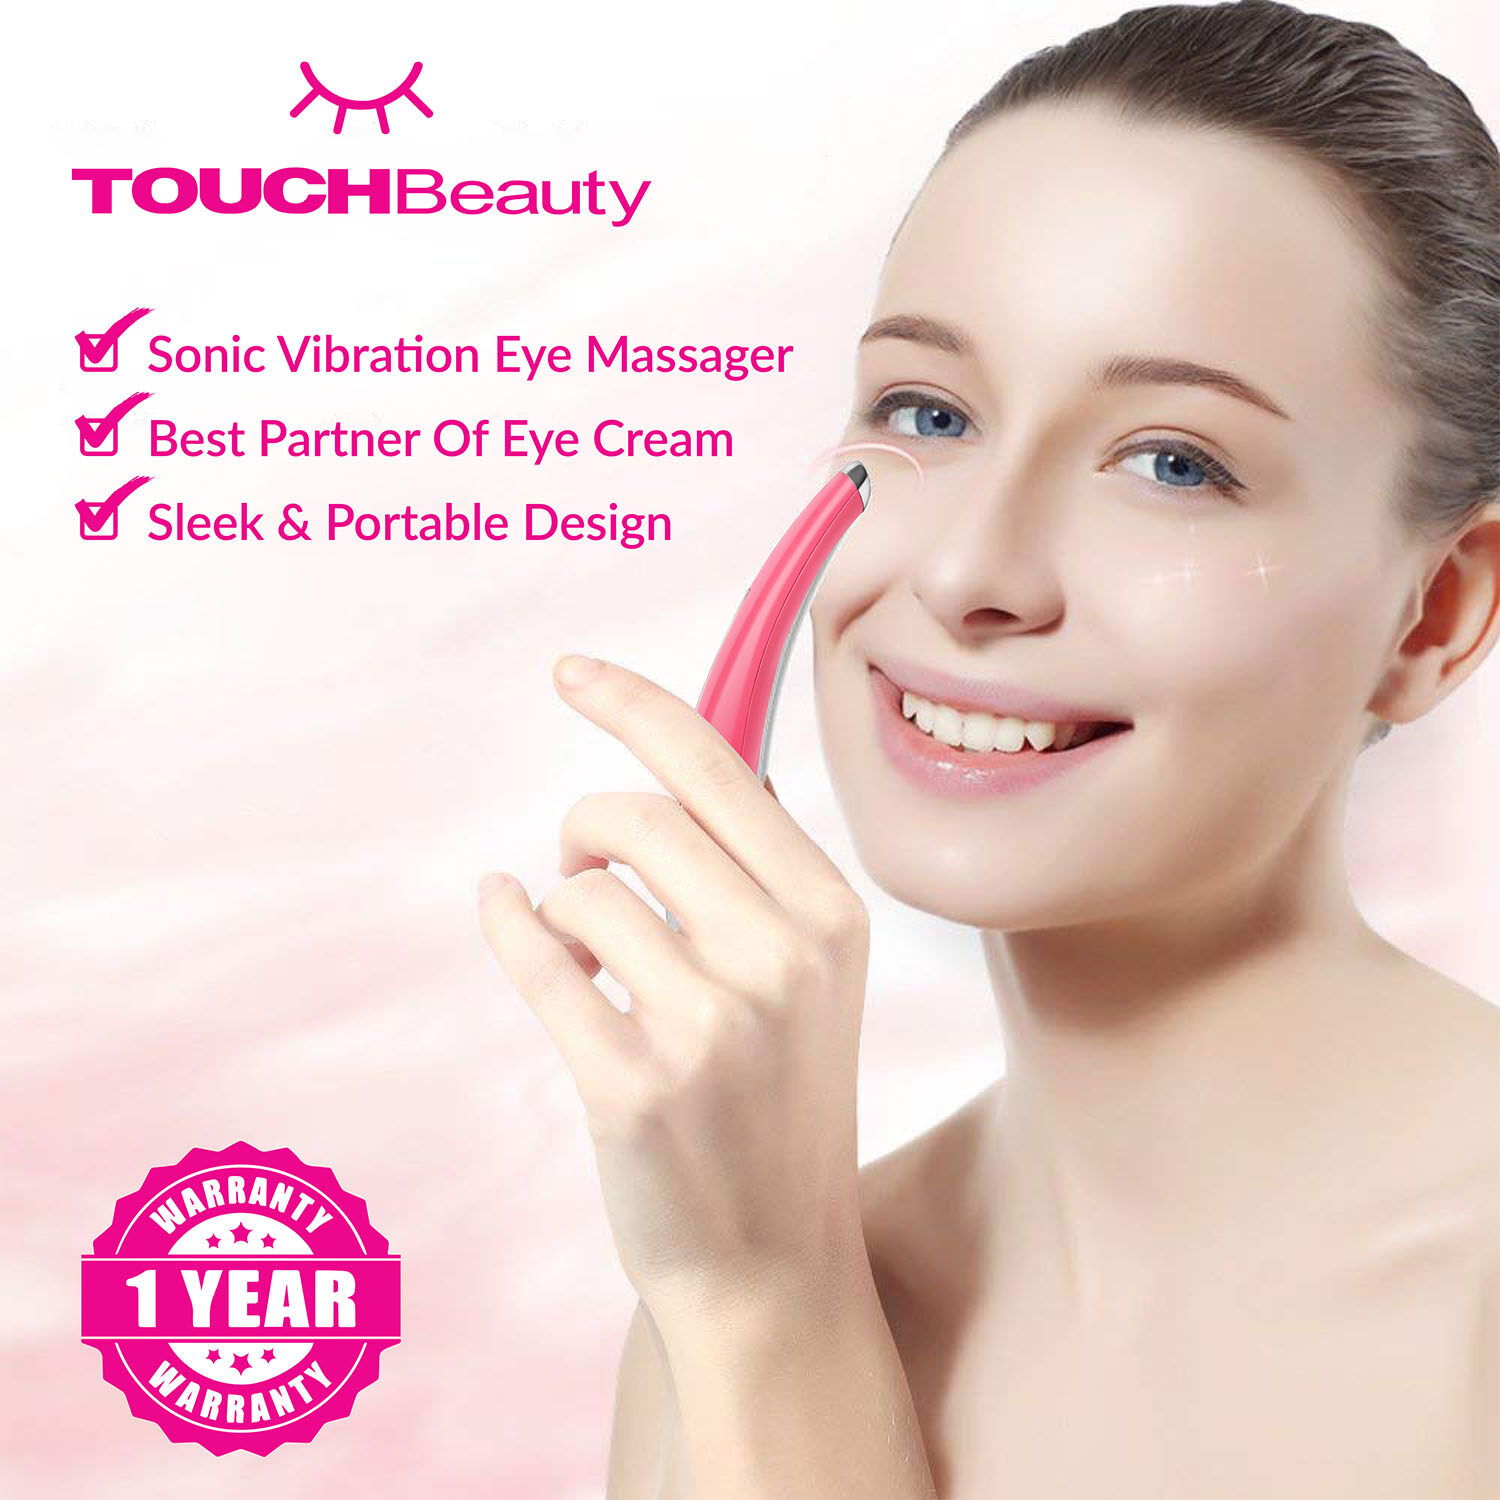 TOUCHBeauty Eye Massagers TB-1583 Anti-wrinkle Sonic Eye Device White/SONIC VIBRATION EYE MASSAGER/COMBINED 40? WARM TREATMENT WITH SONIC VIBRATION/The vibration helps to increase blood circulation